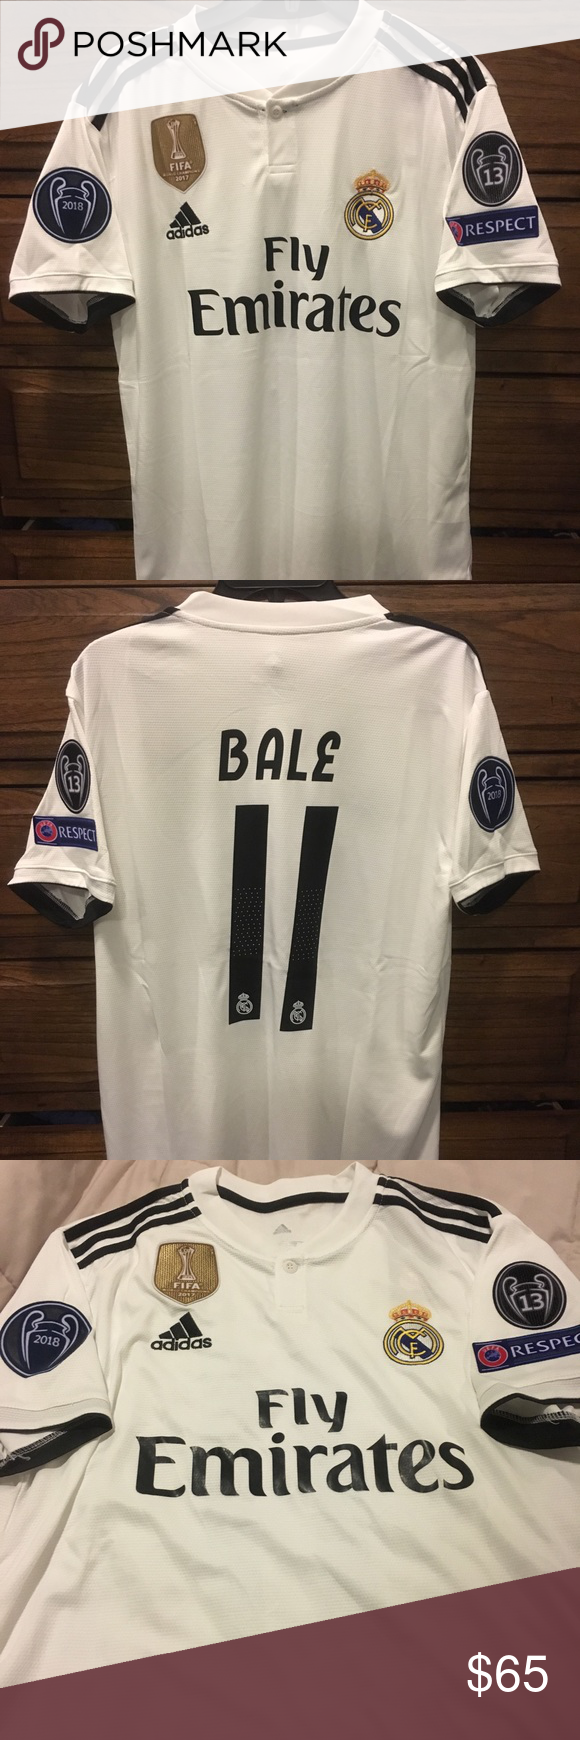 1003986eb Real Madrid Gareth Bale  11 Jersey Real Madrid 2018-2019 Gareth Bale ...